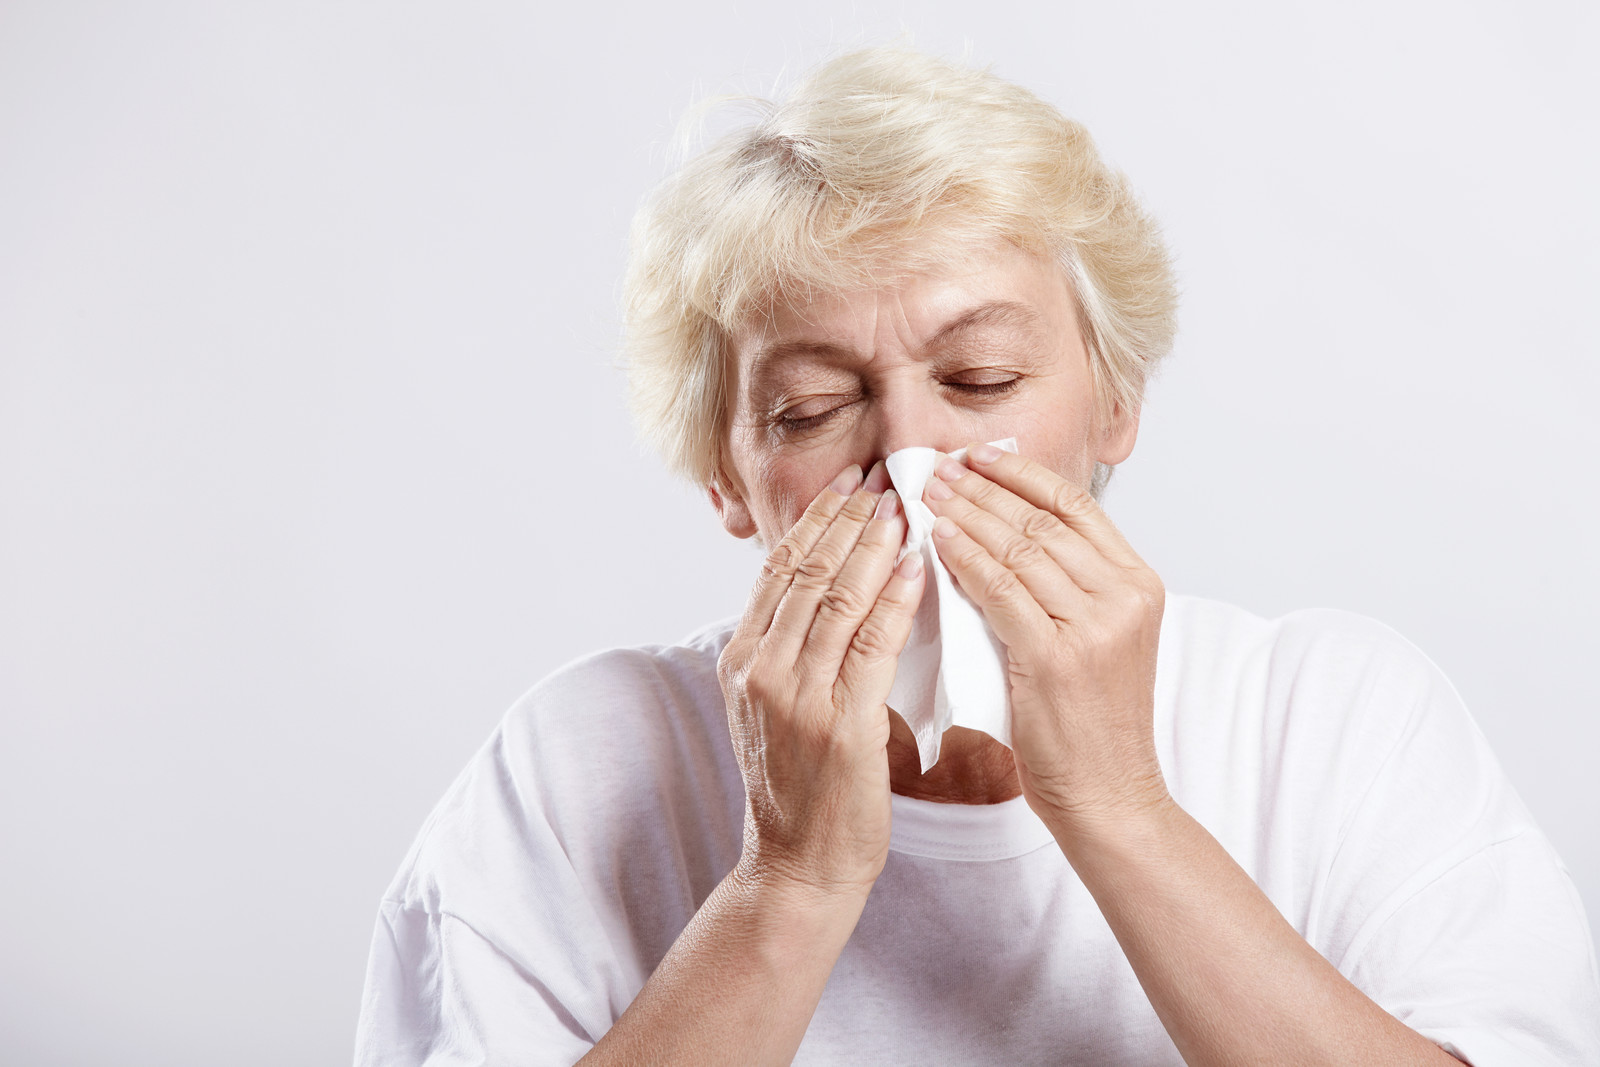 'Freeze' that Drippy Runny Nose